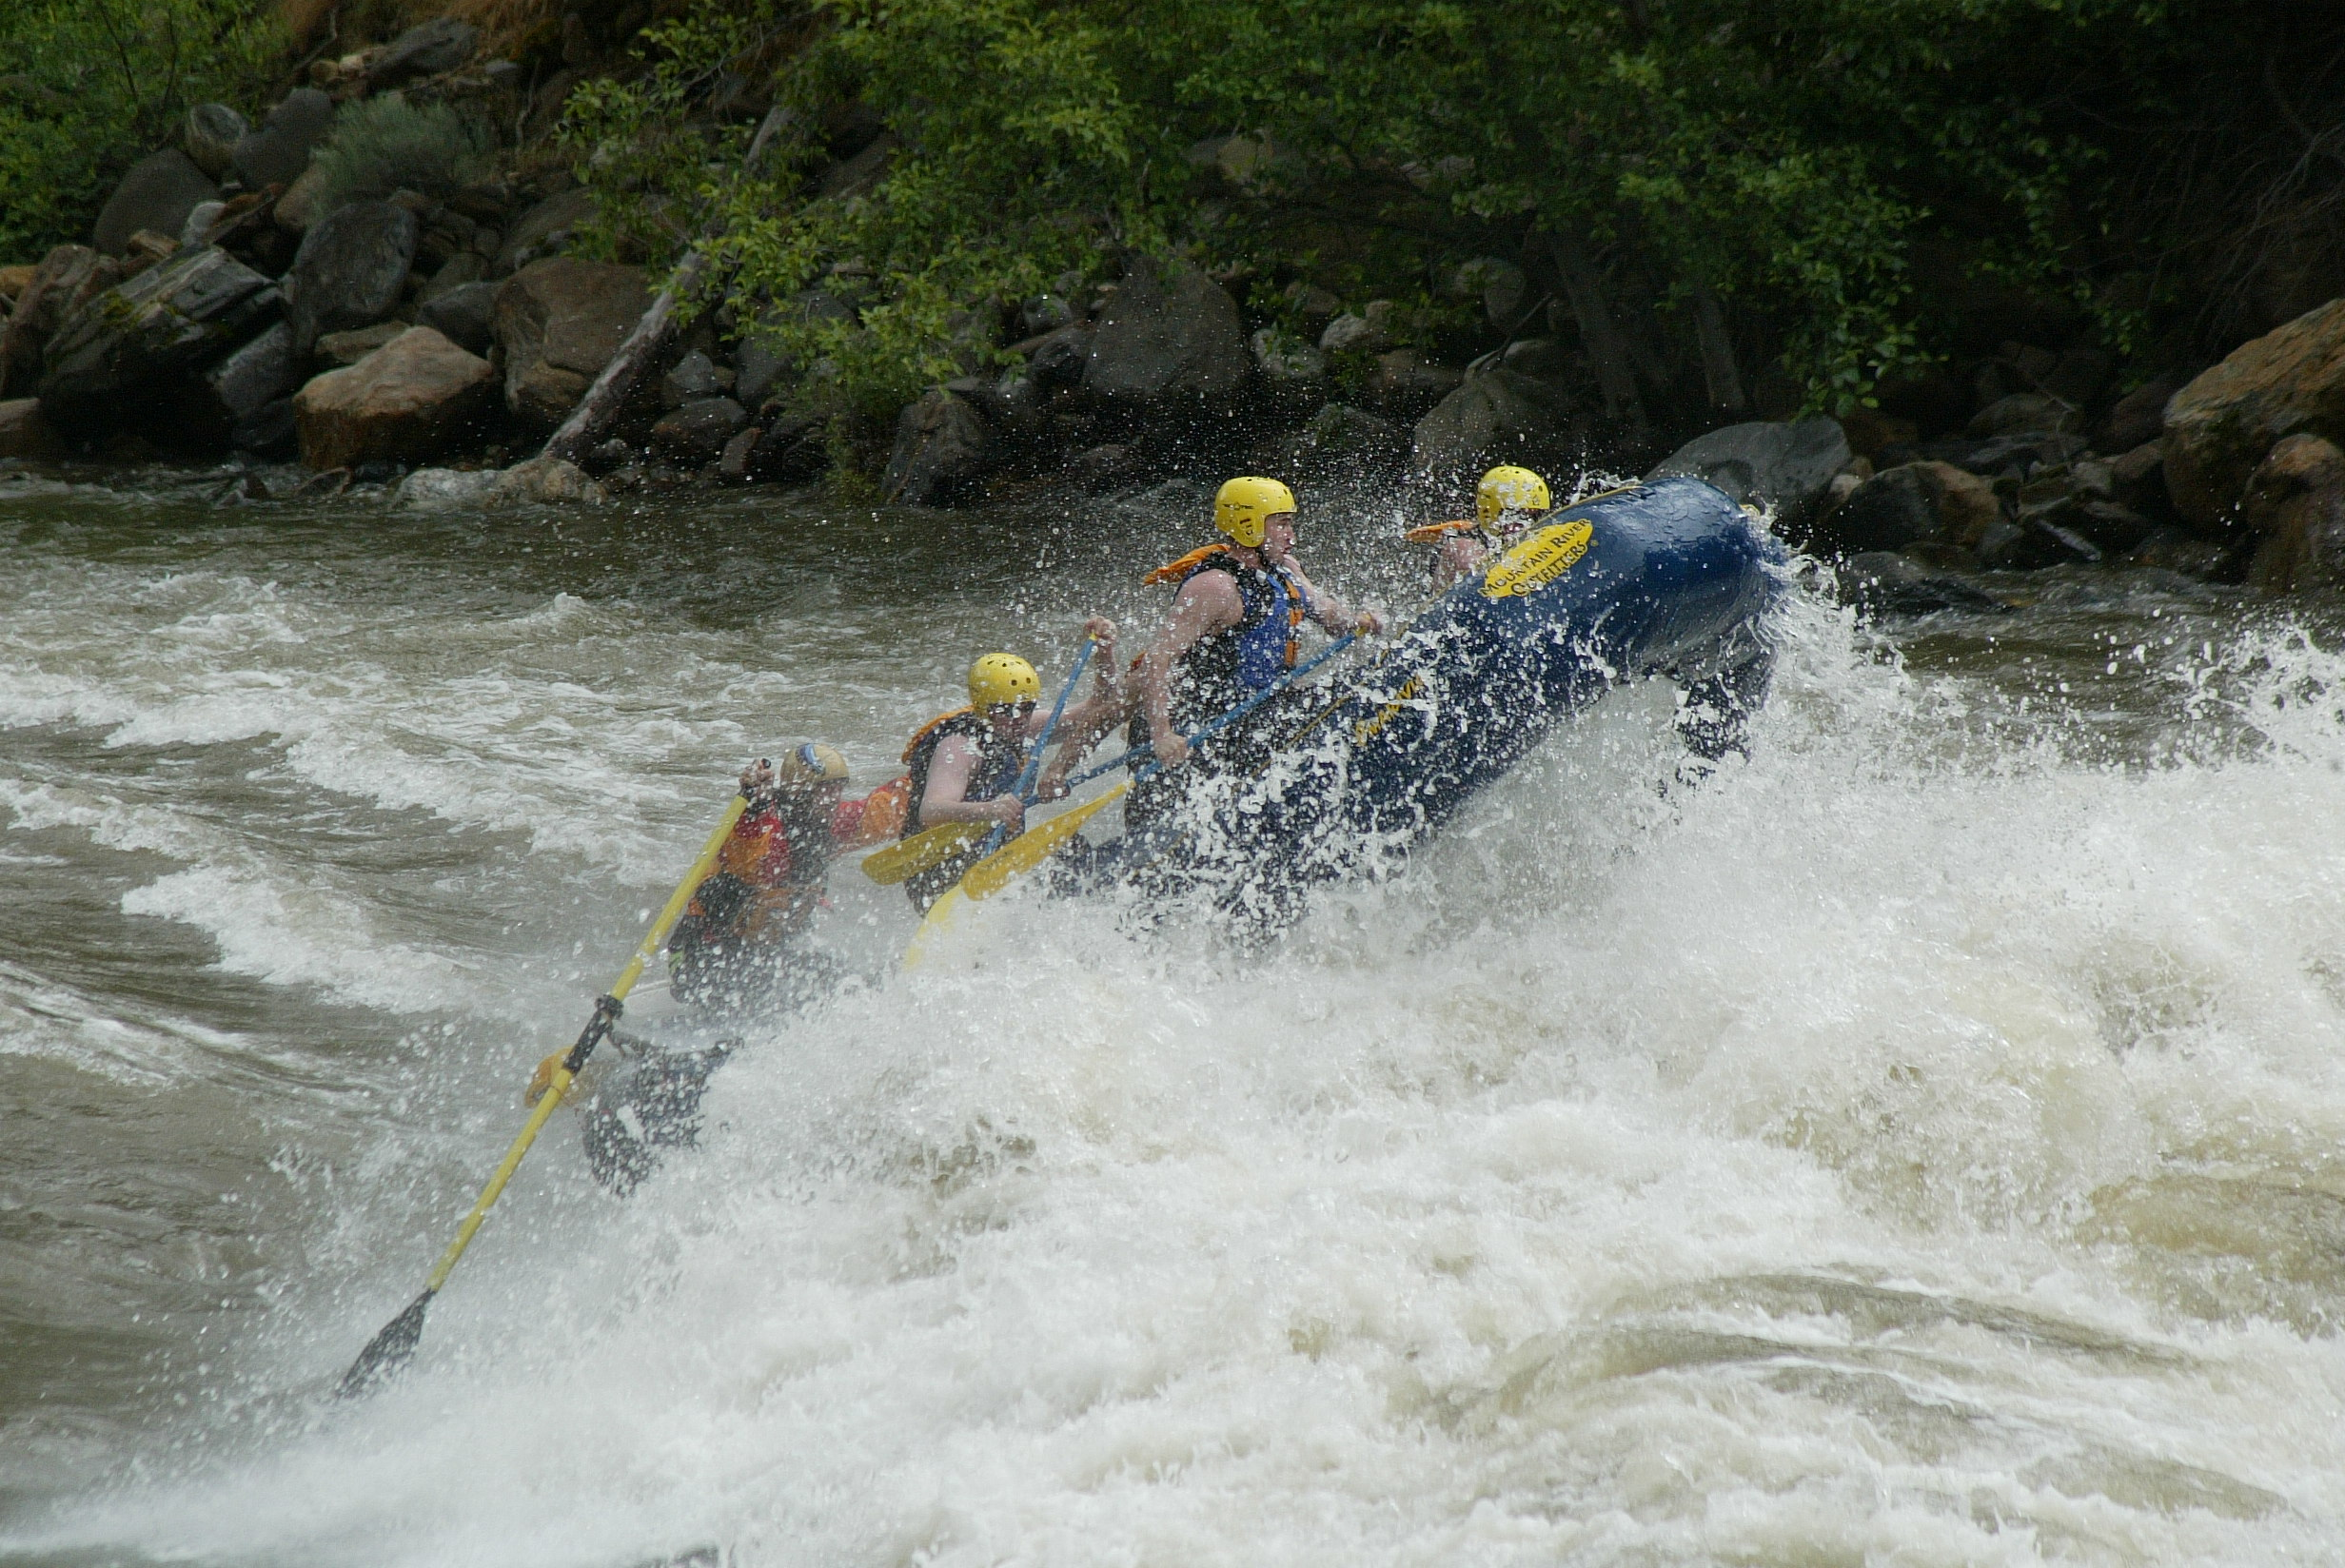 15 and 16 foot whitewater raft comparison shootout — Seattle